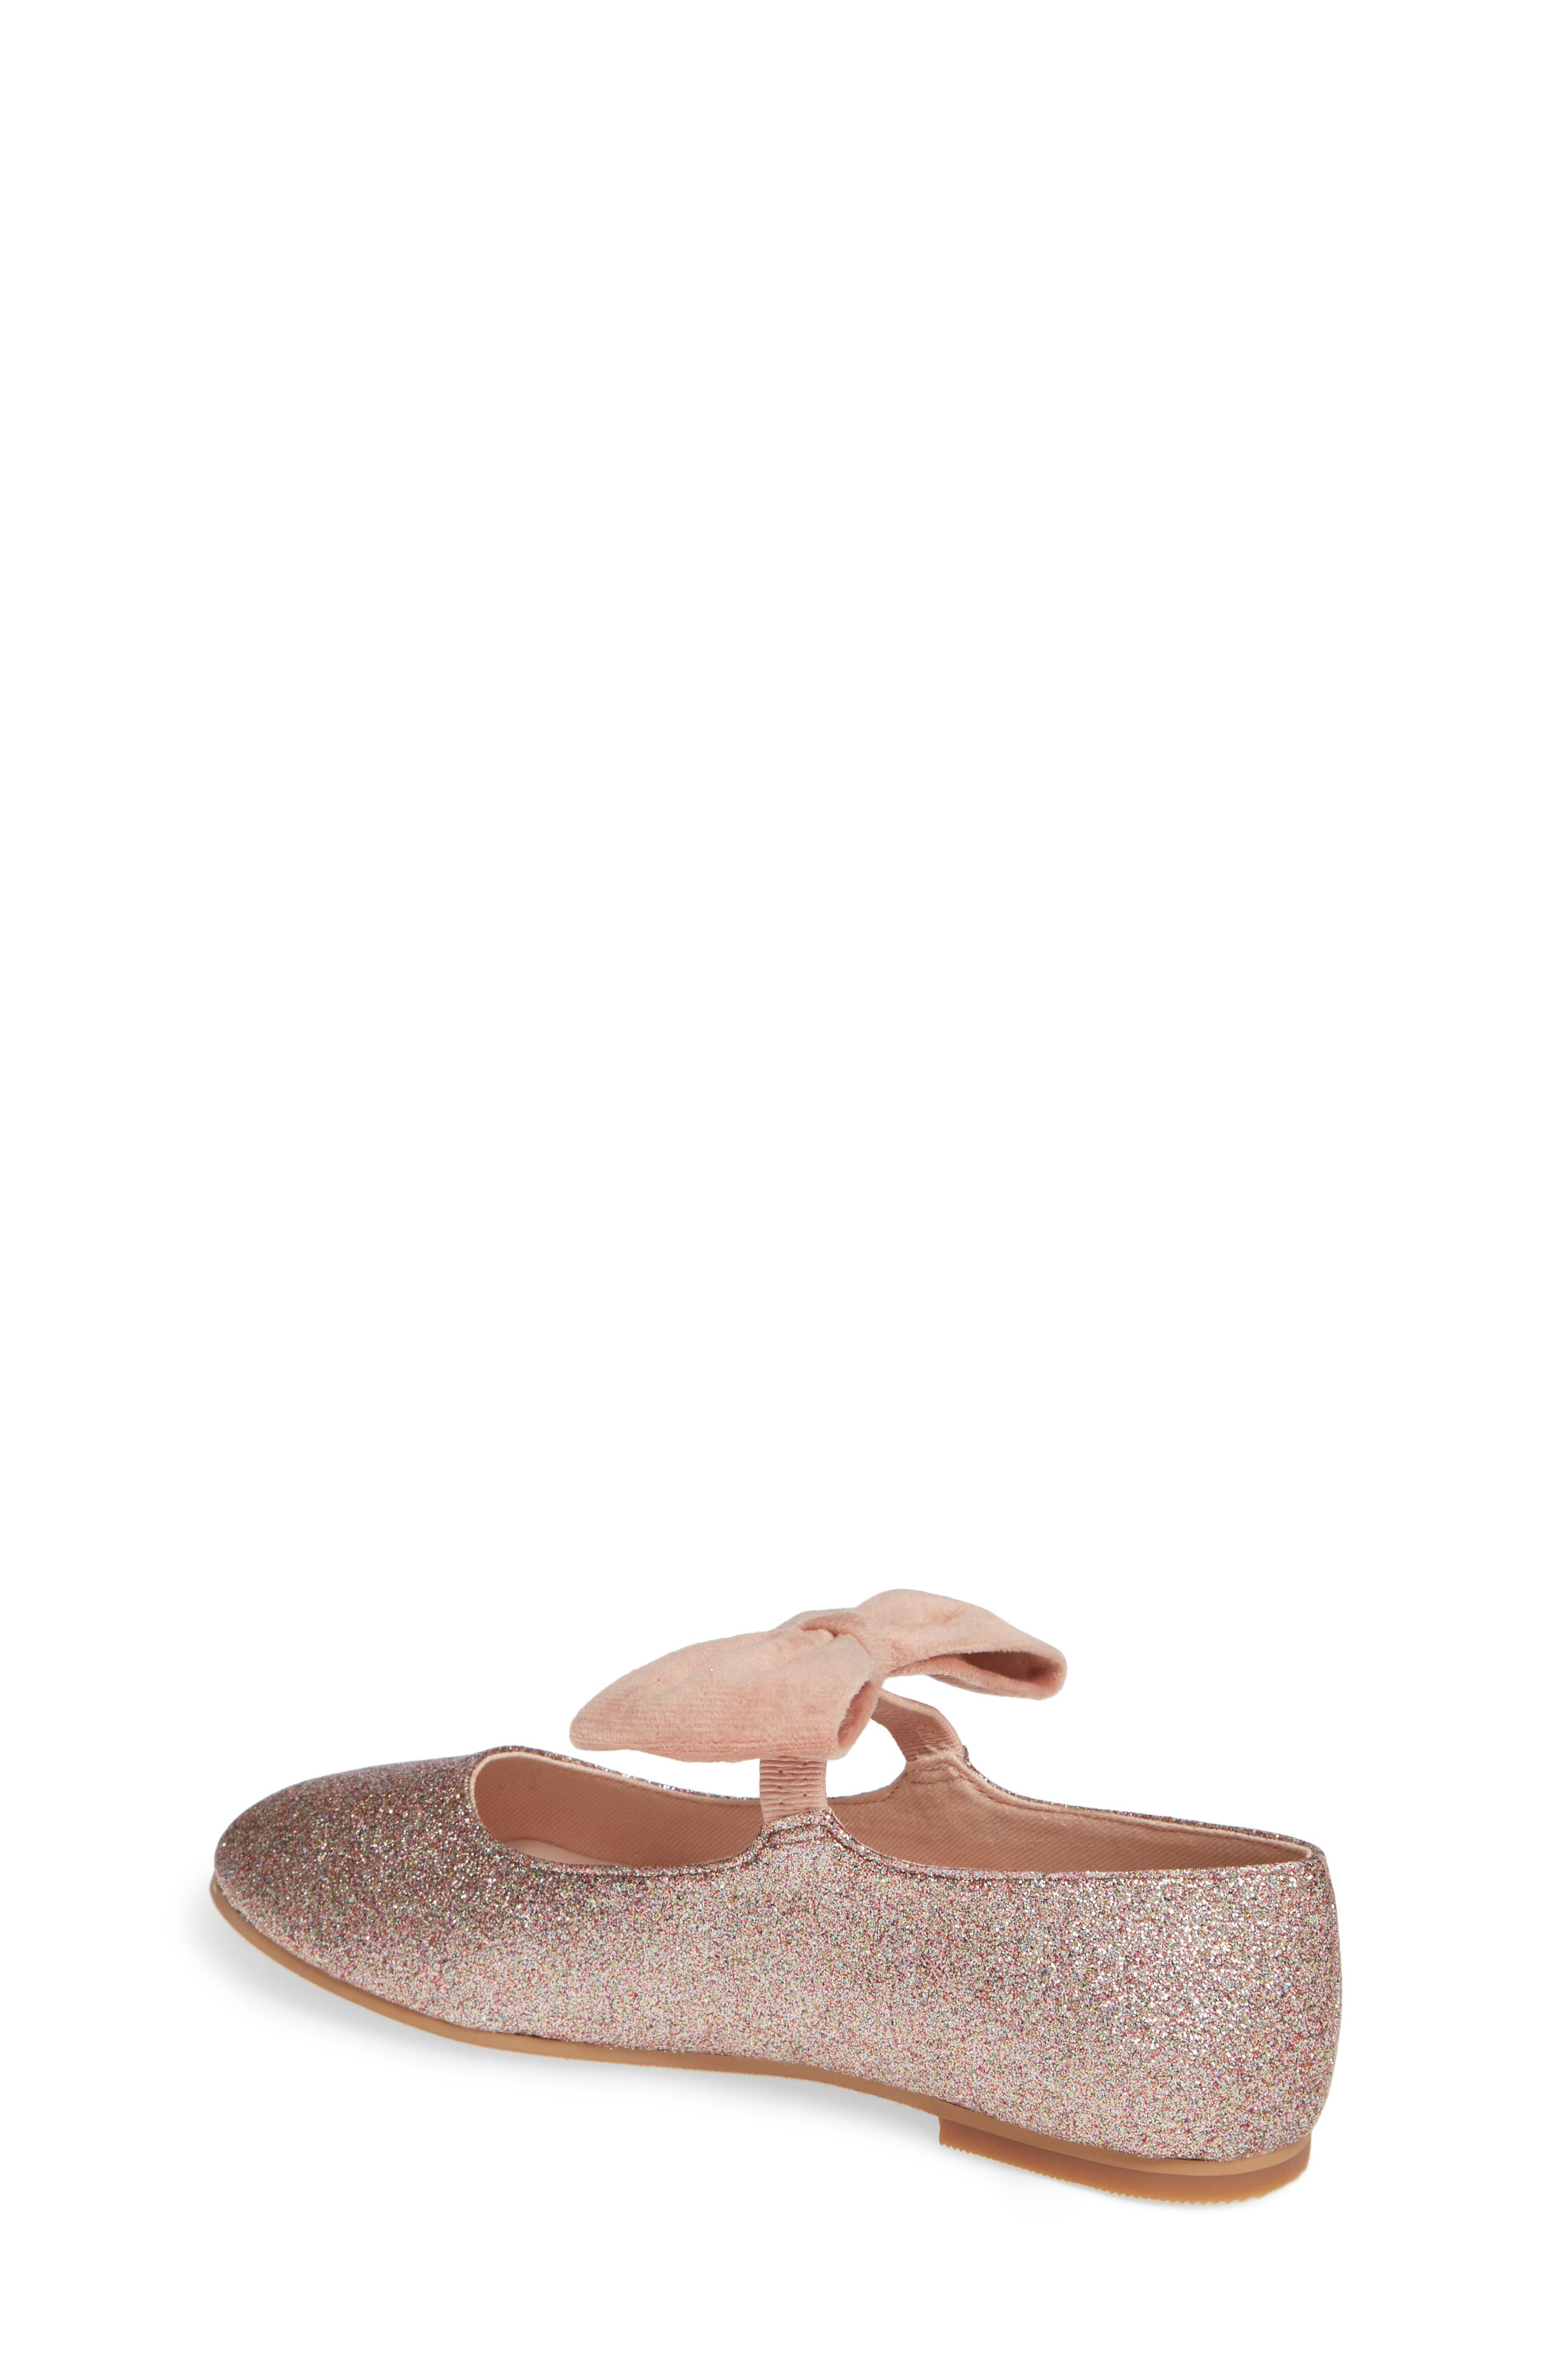 Eleanore Mary Jane Flat,                             Alternate thumbnail 2, color,                             PINK MULTI GLITTER PU